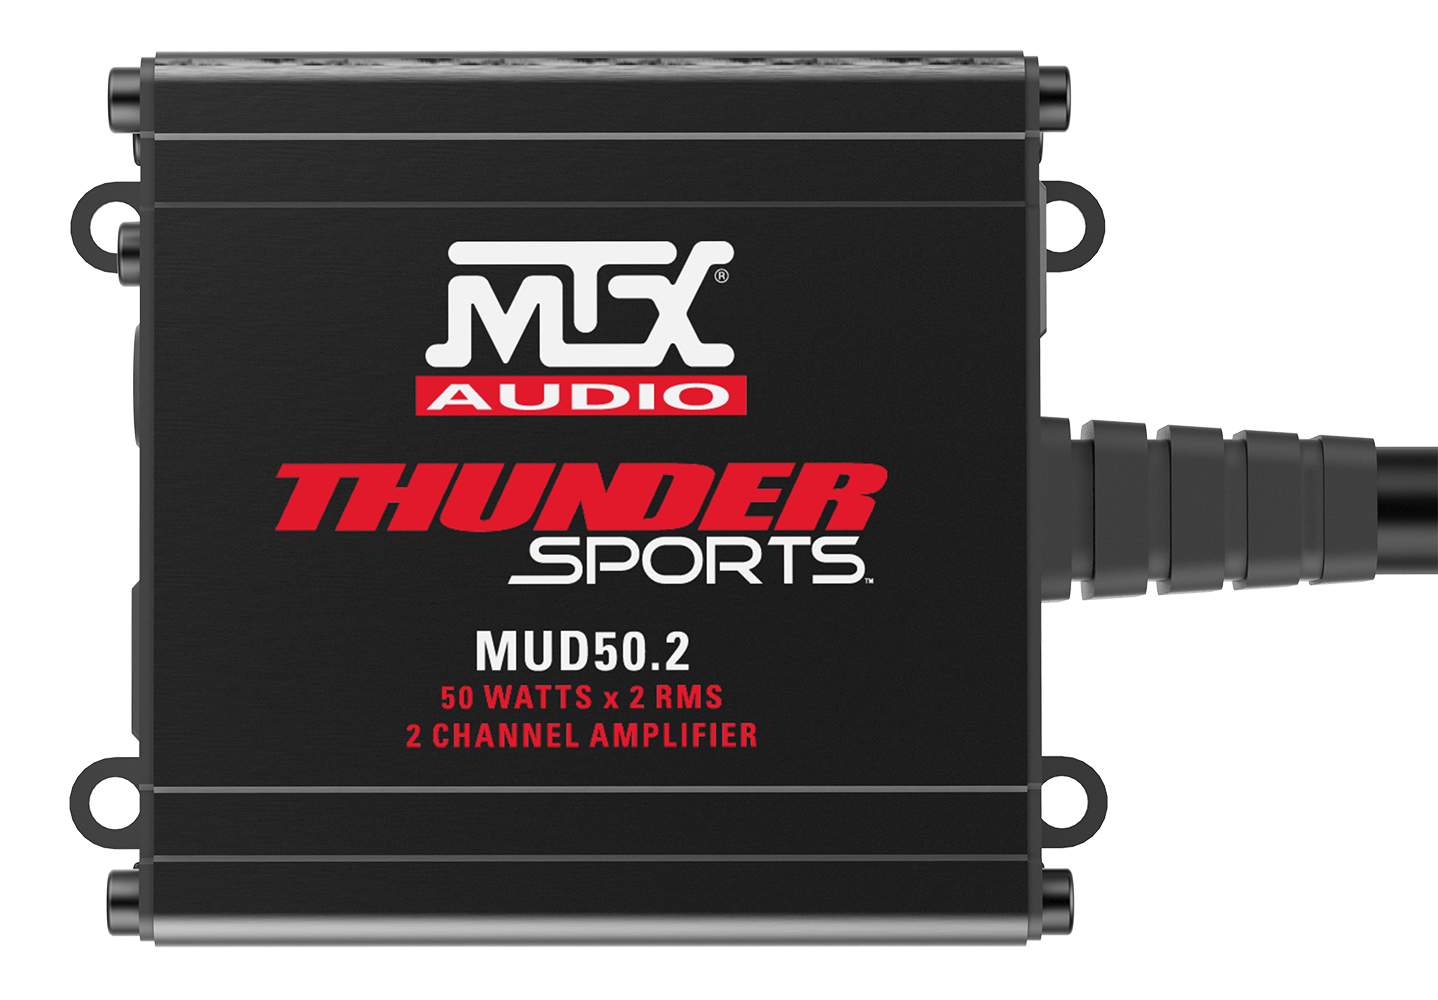 Audio Power Amplifier Archives Circuit Design Mud Series 100 Watt Rms 2 Channel Full Range Class D All Weather Powersports Mtx Serious About Sound